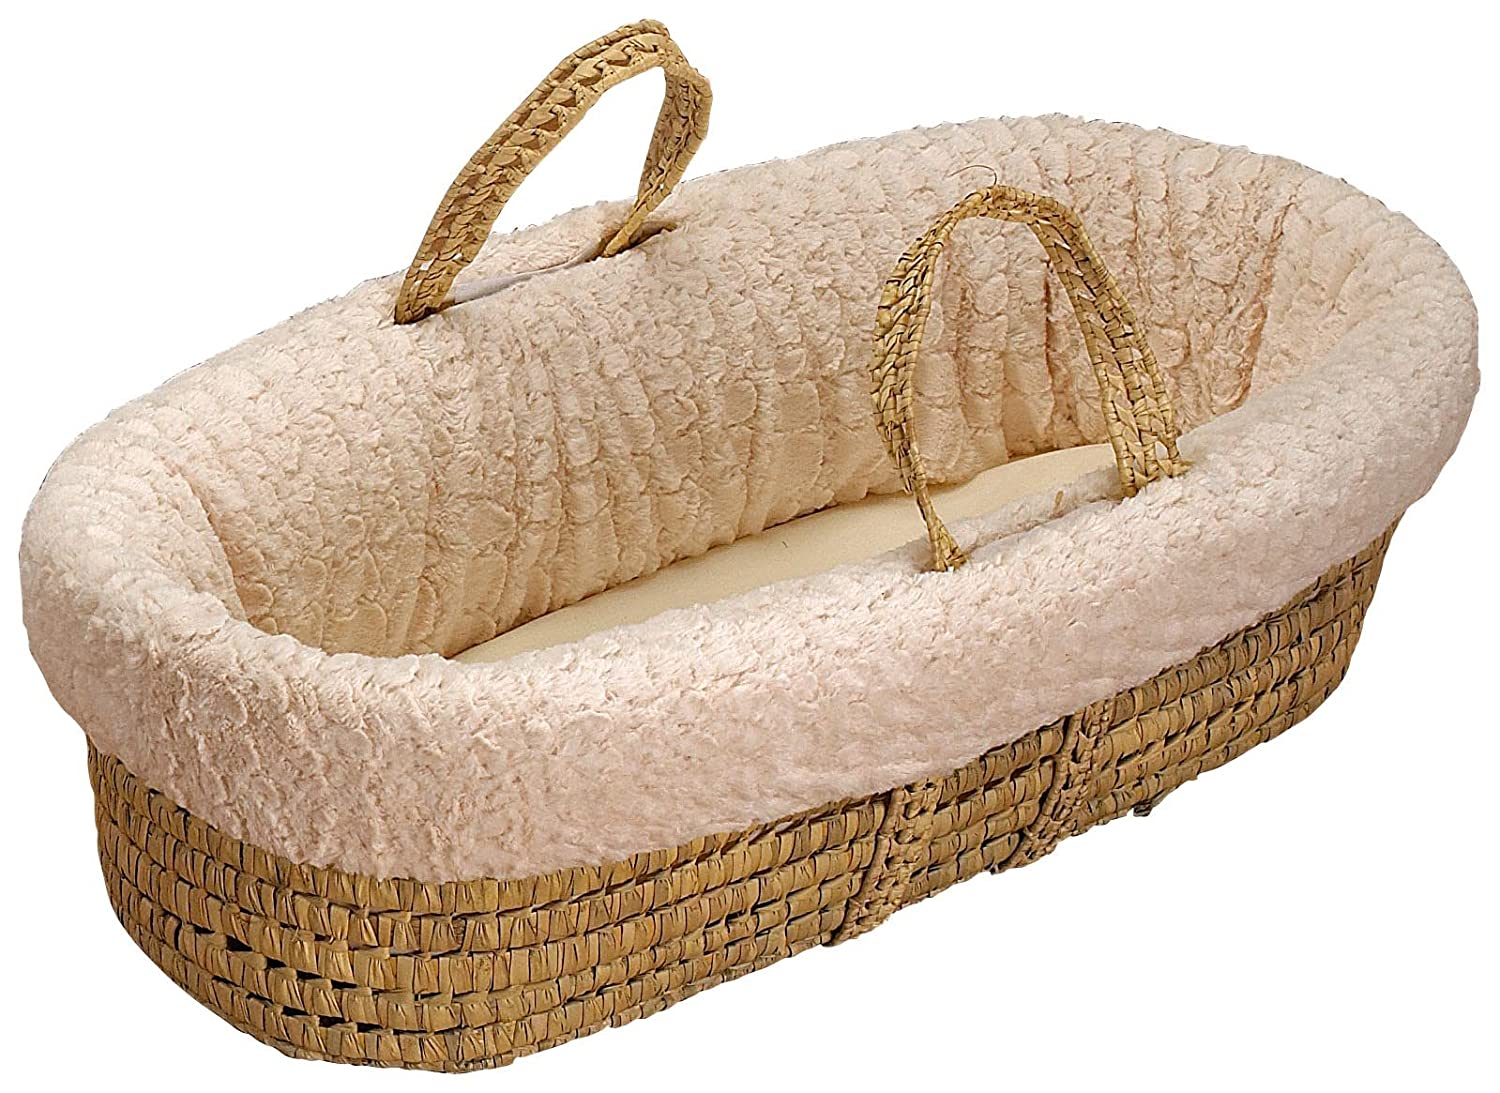 BabyDoll Sheepskin Moses Basket Set, Ivory Baby Doll Bedding 8800mb